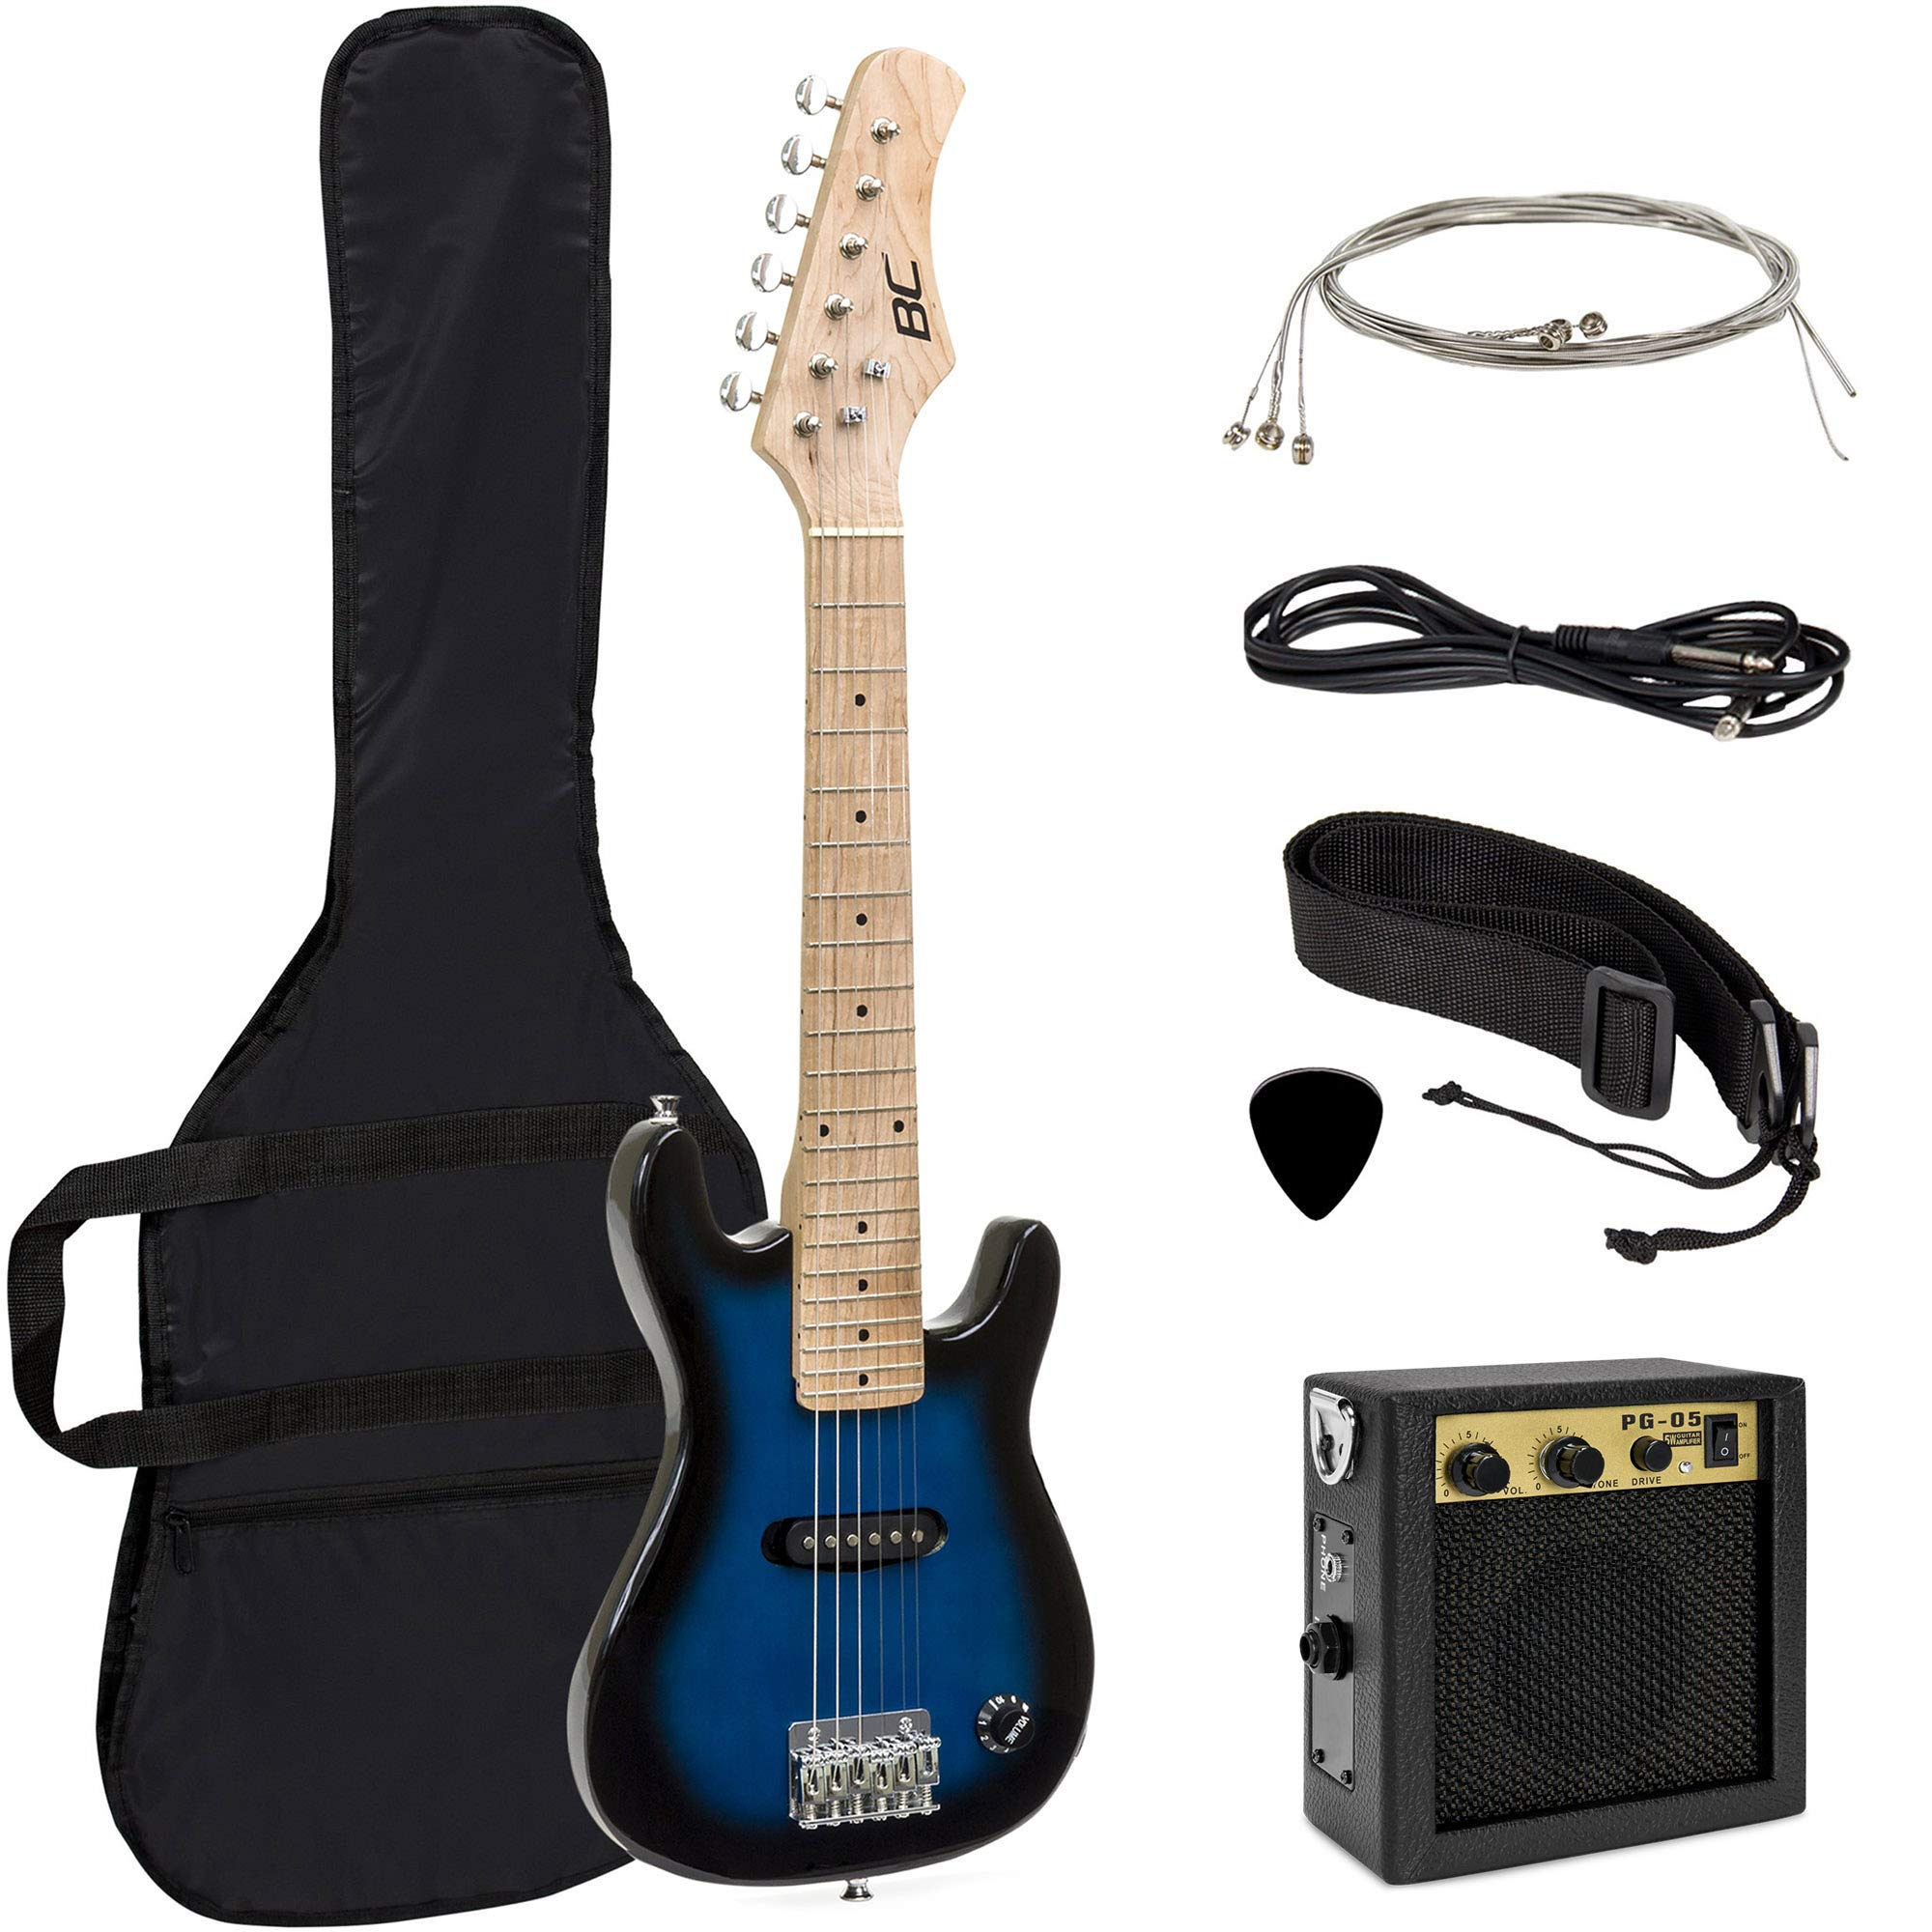 Best Choice Products 30in Kids 6-String Electric Guitar Beginner Starter Kit w/ 5W Amplifier, Strap, Case, Strings, Picks - Blue by Best Choice Products